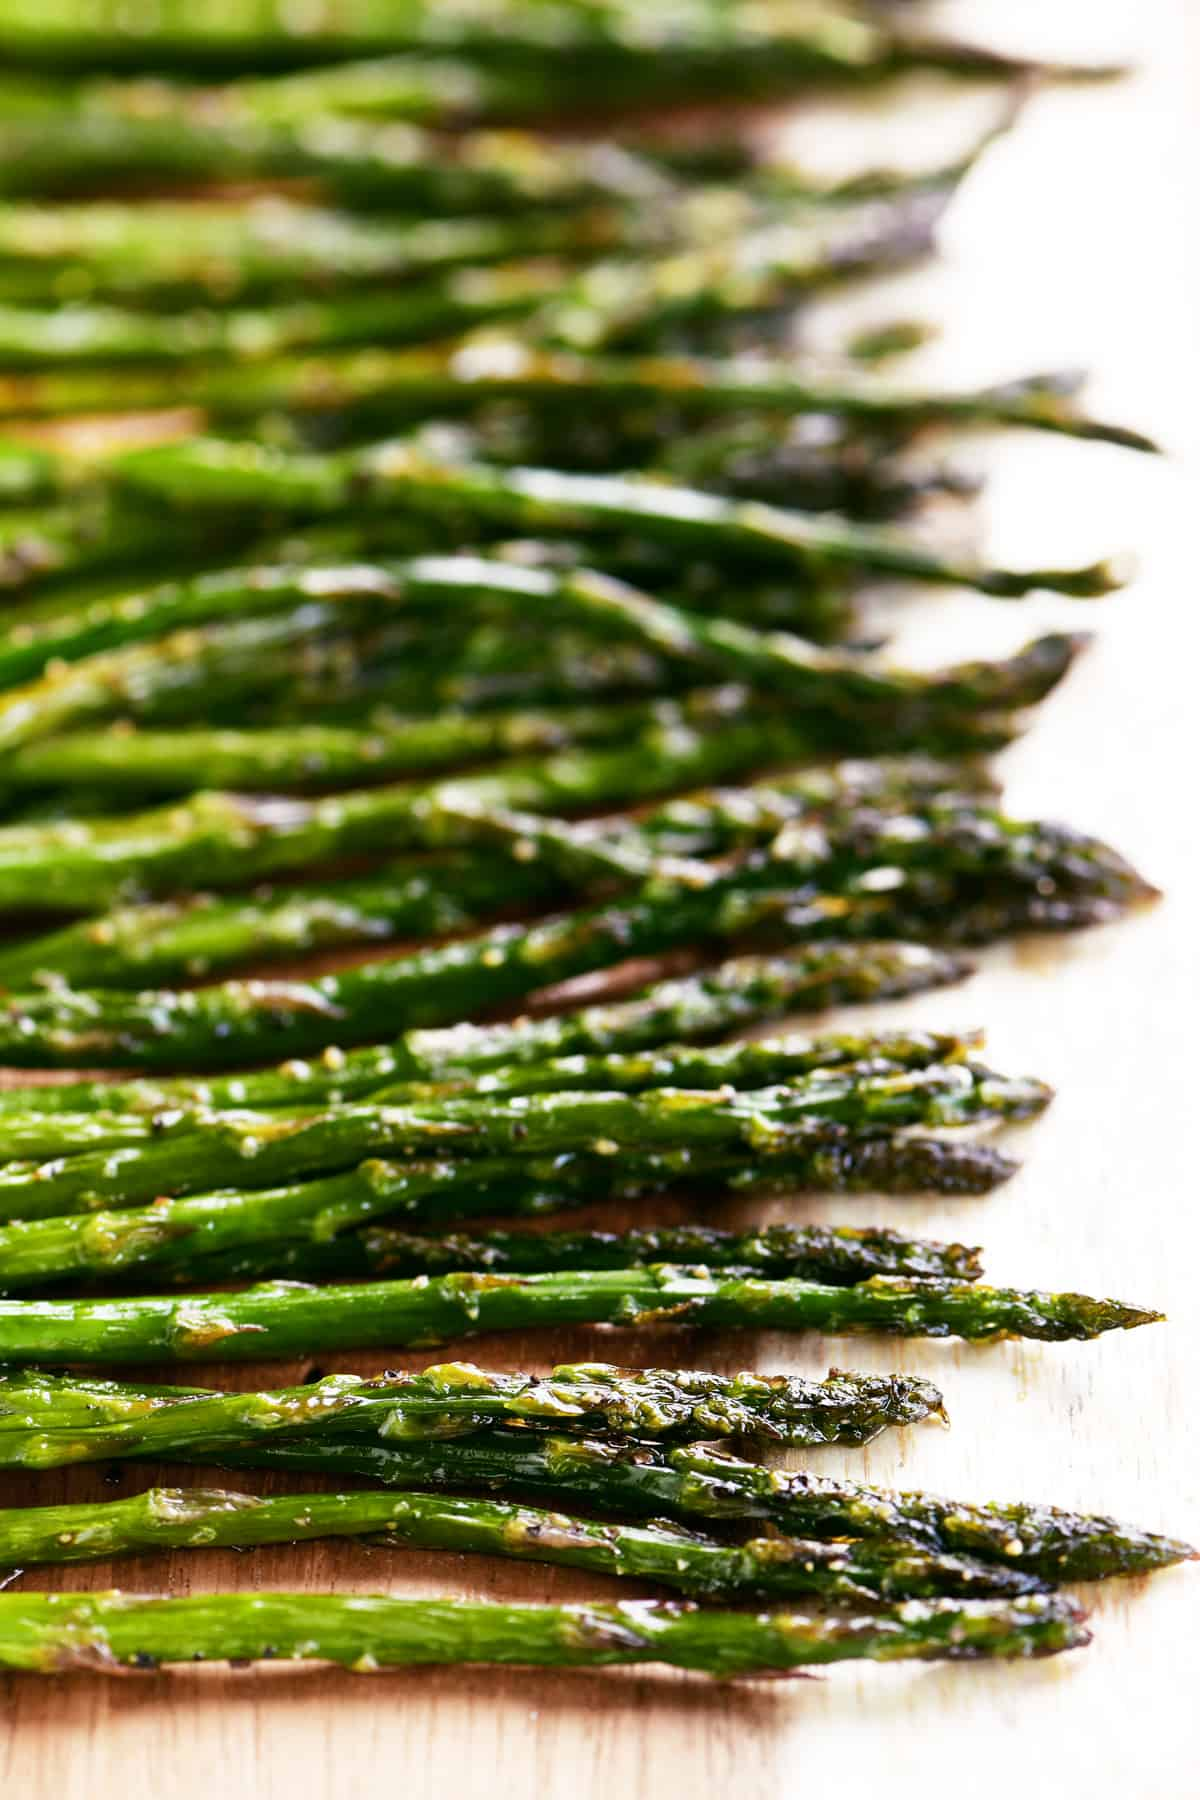 cooked asparagus on a wood board